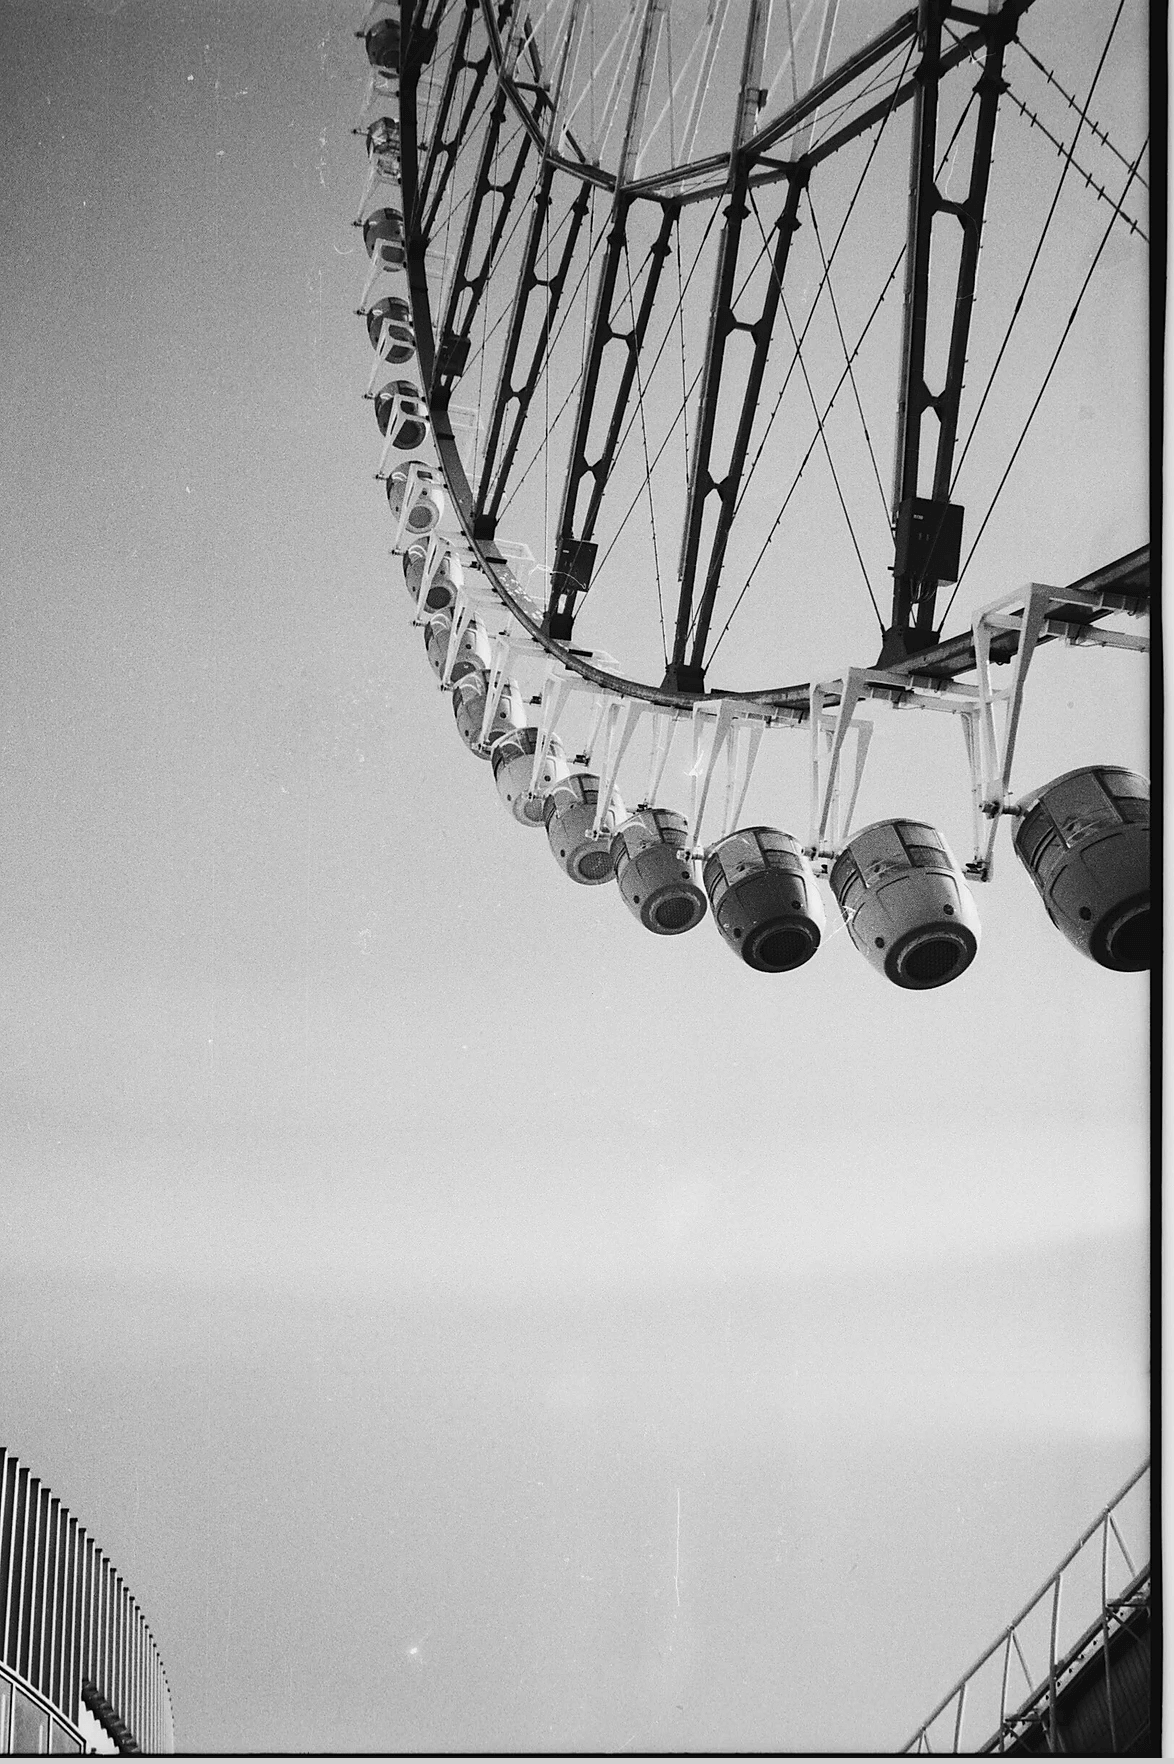 ferris wheel in japan in black and white